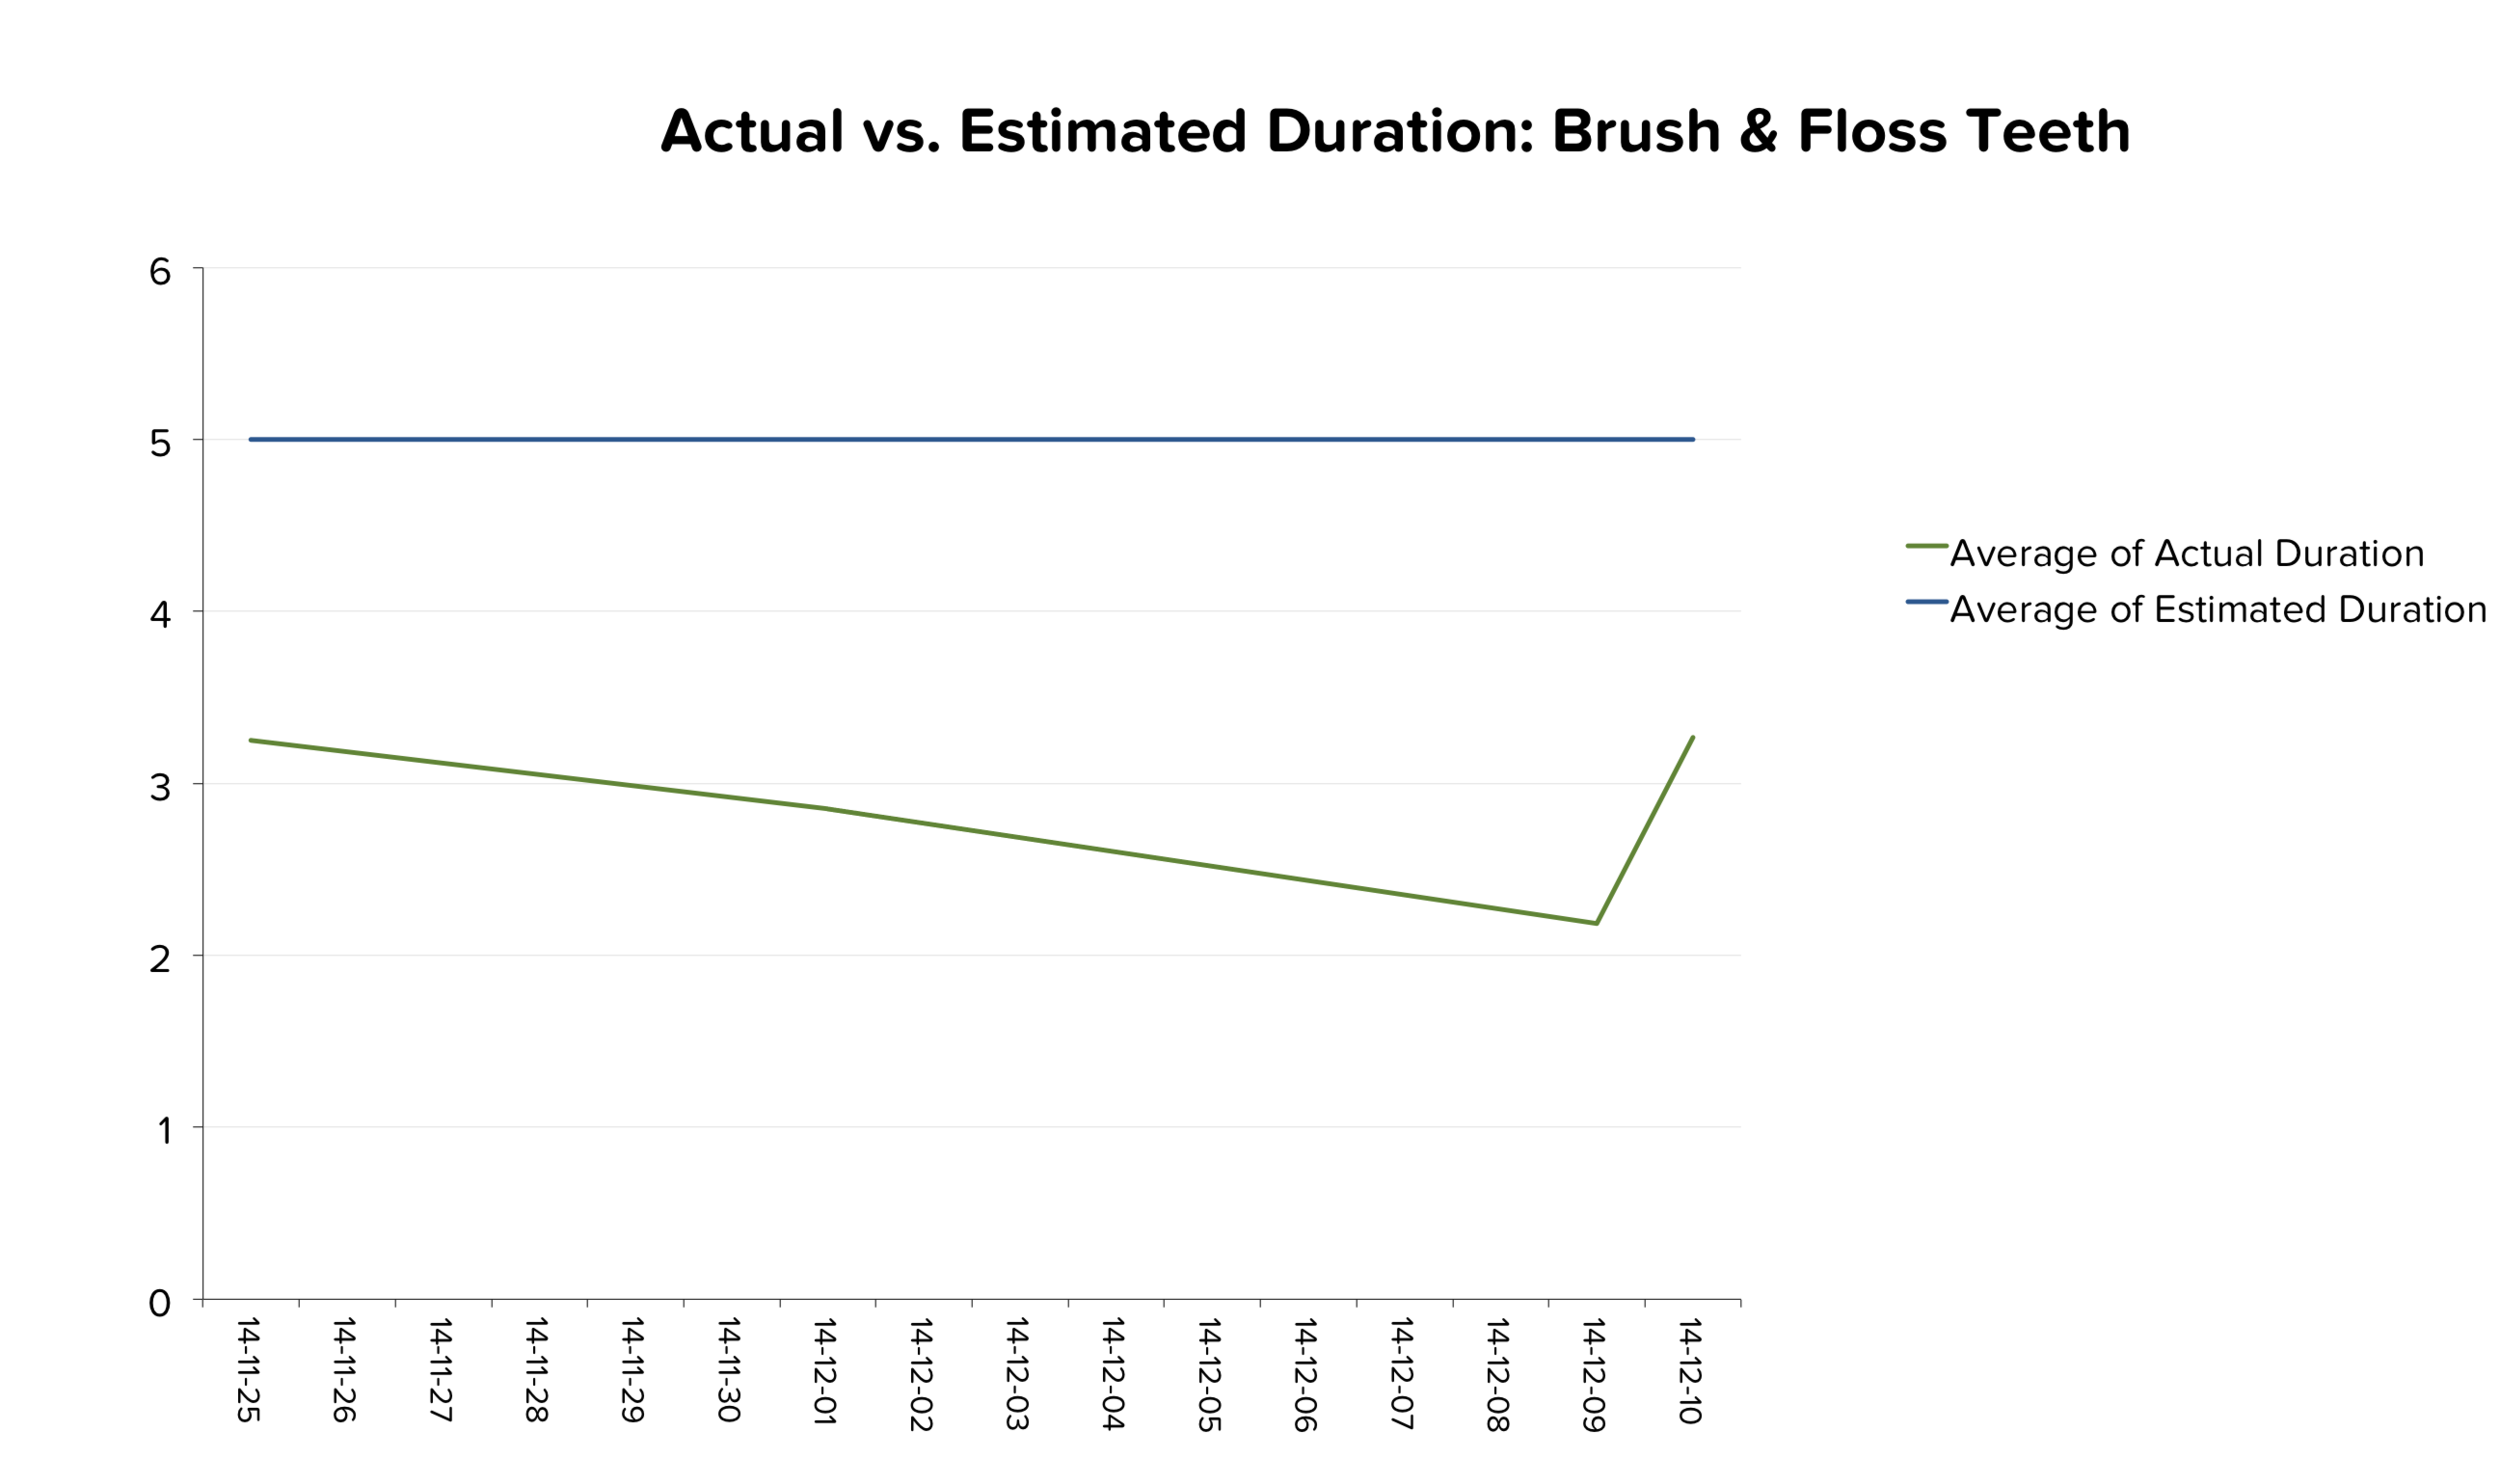 Looks like Leo could be ready to reduce the target by 1 minute, but I won't do this because I don't want him to rush through brushing teeth just yet.